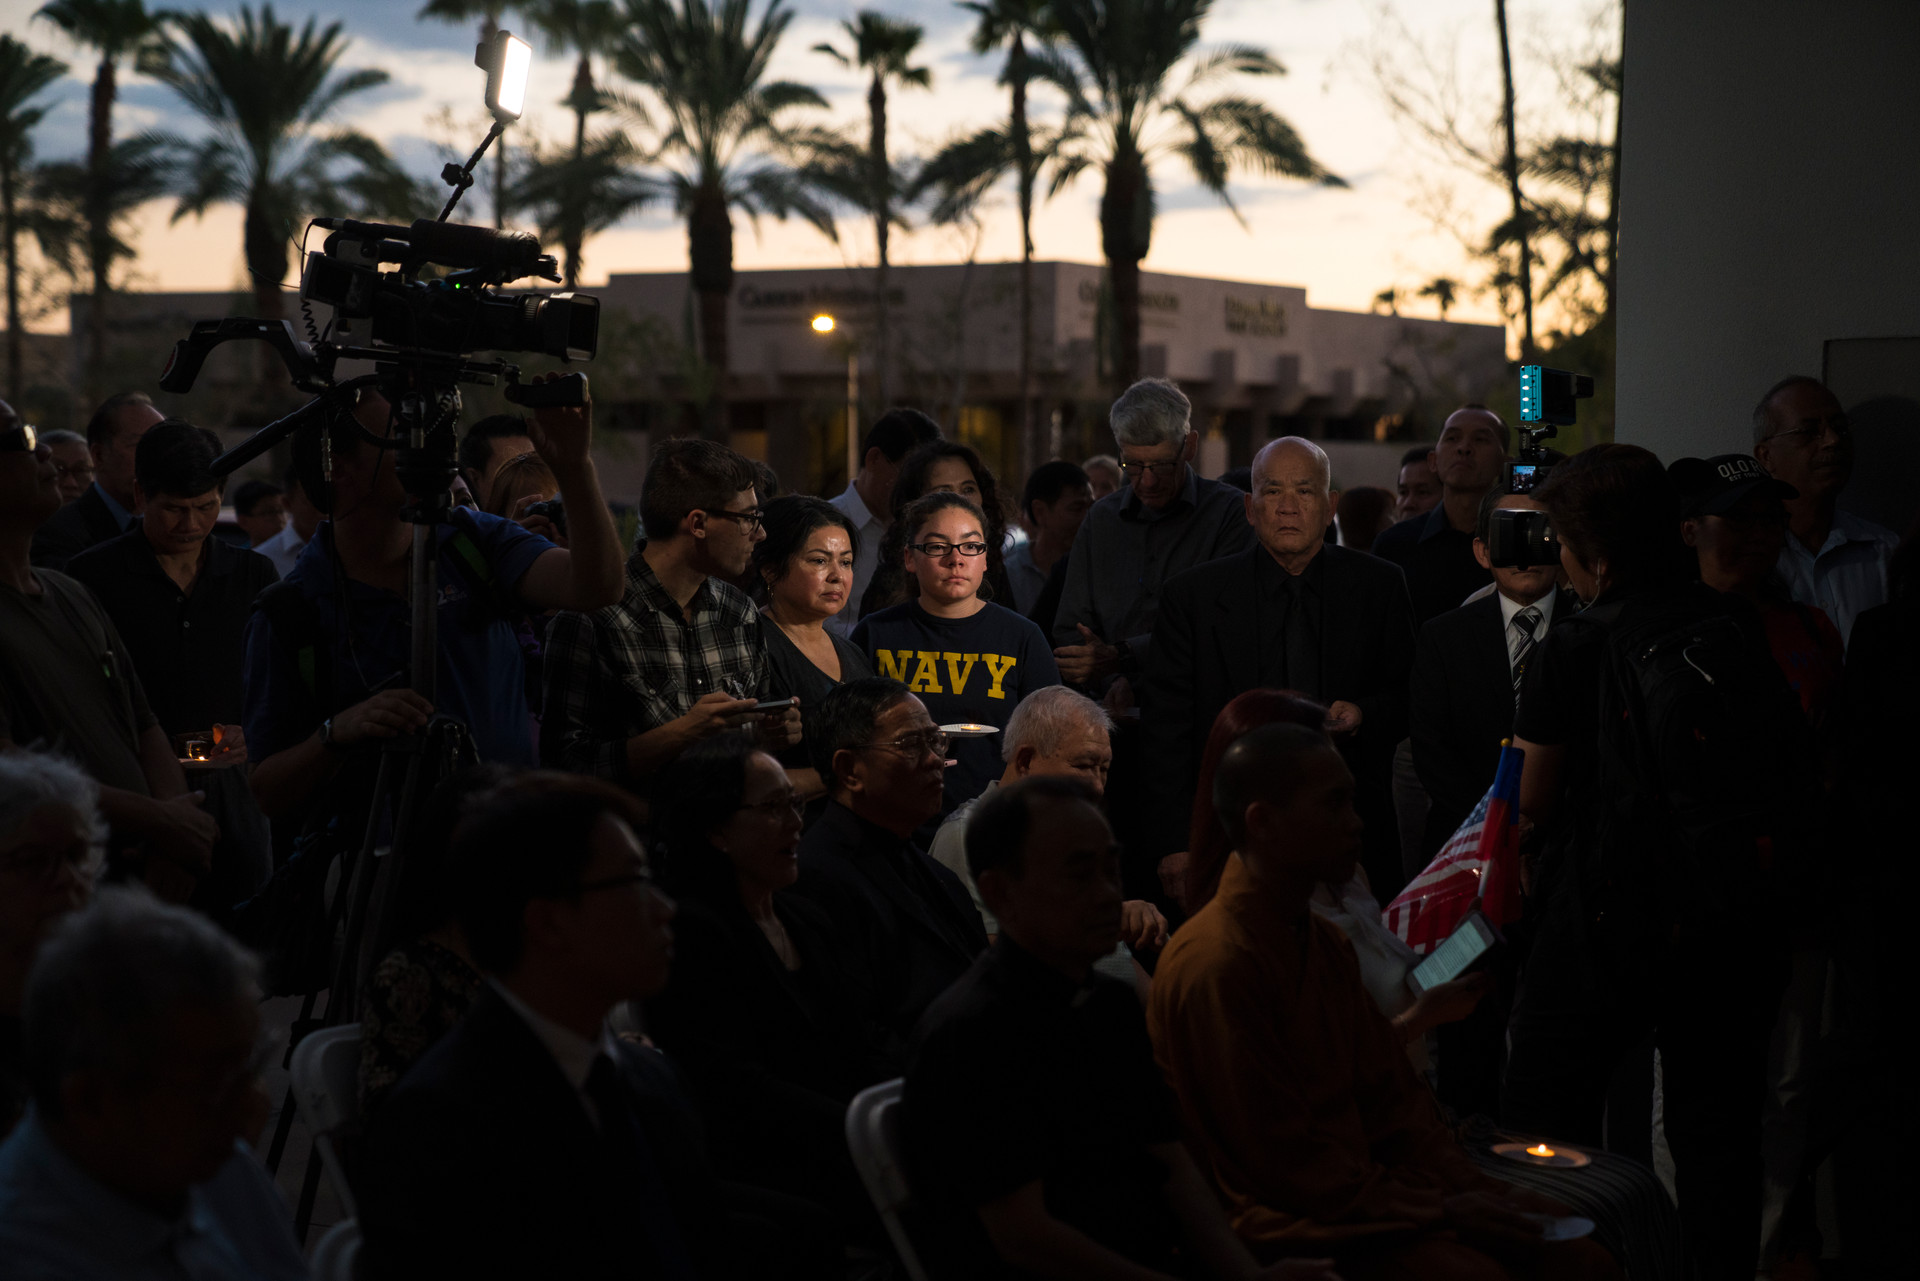 Ariona resdience attend the Vietnamese Association of Arizona memorial for John McCain at his office in Phoenix, Arizona on Sunday, August 26, 2018.